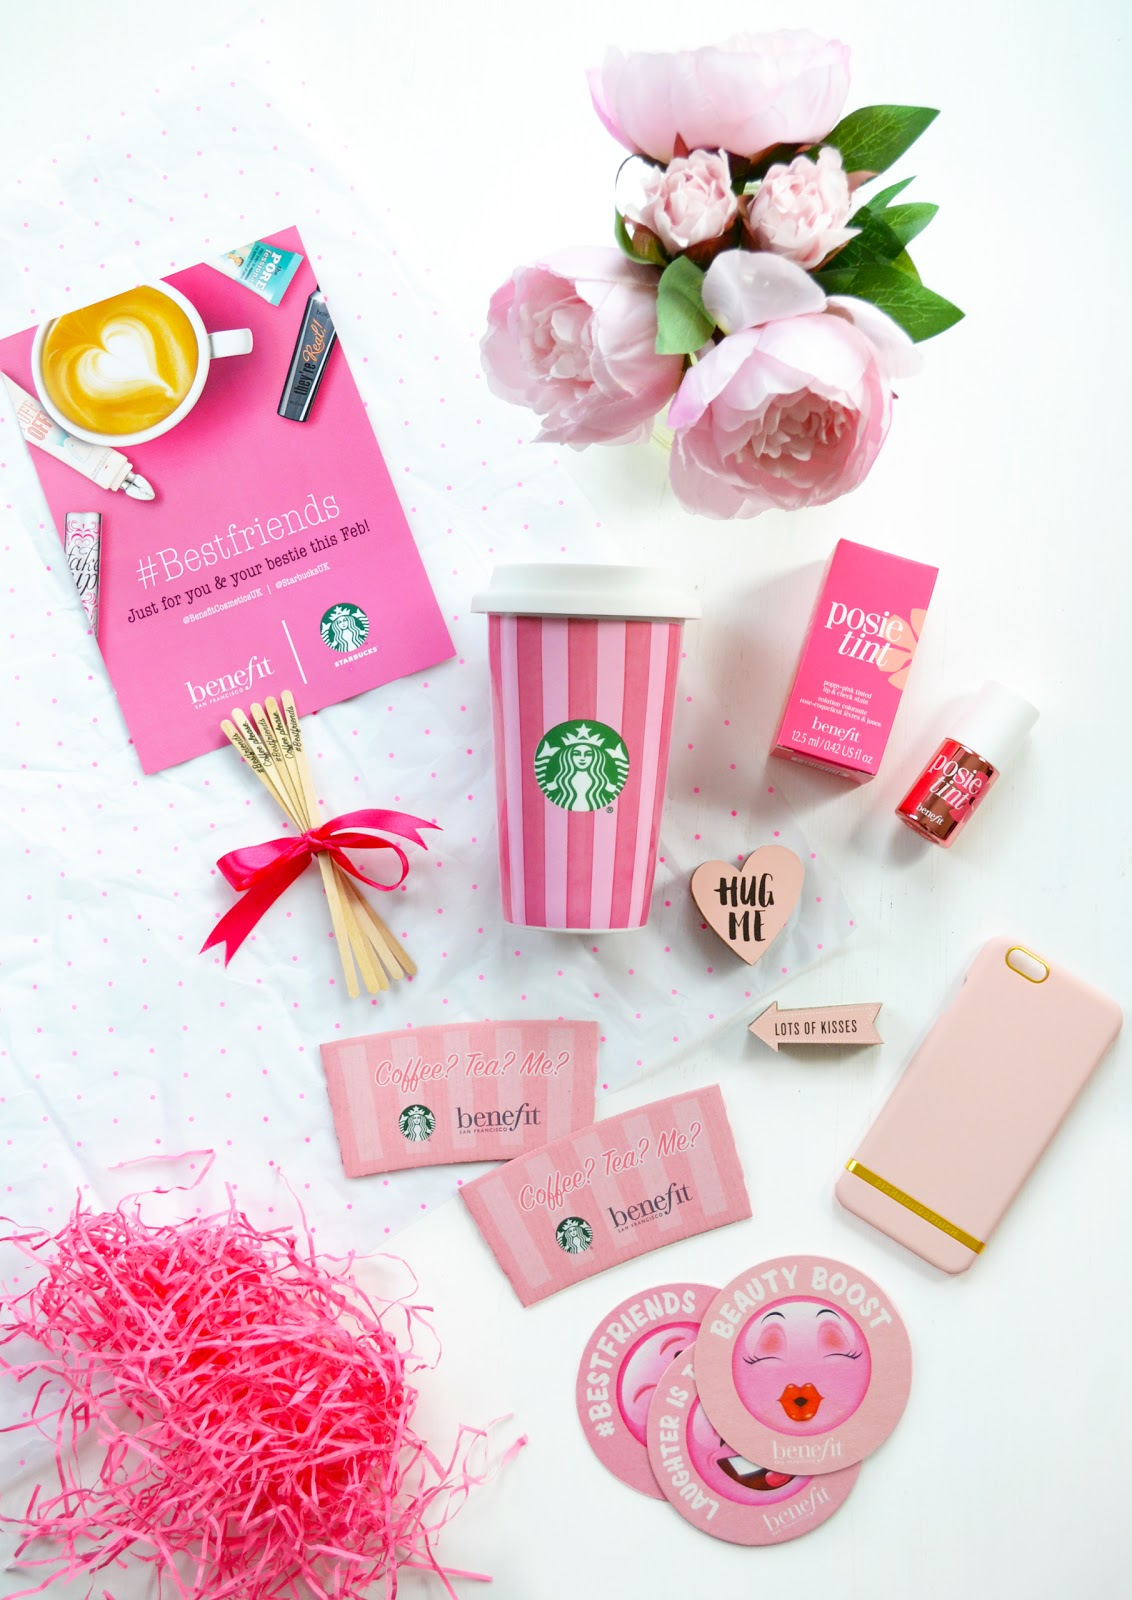 benefit and starbucks free coffee